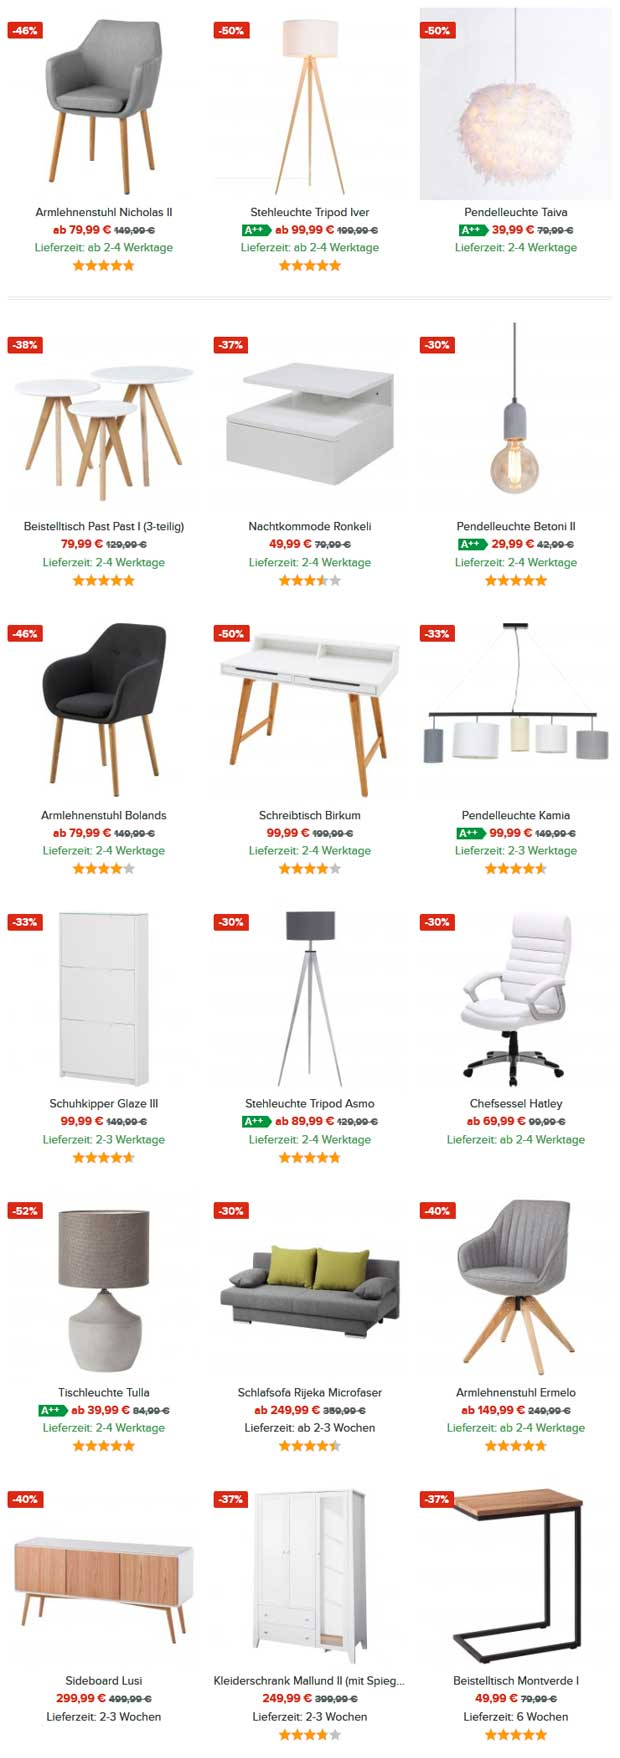 black friday week bei home24 sicher dir bis zu 60 rabatt auf ausgew hlte artikel black. Black Bedroom Furniture Sets. Home Design Ideas